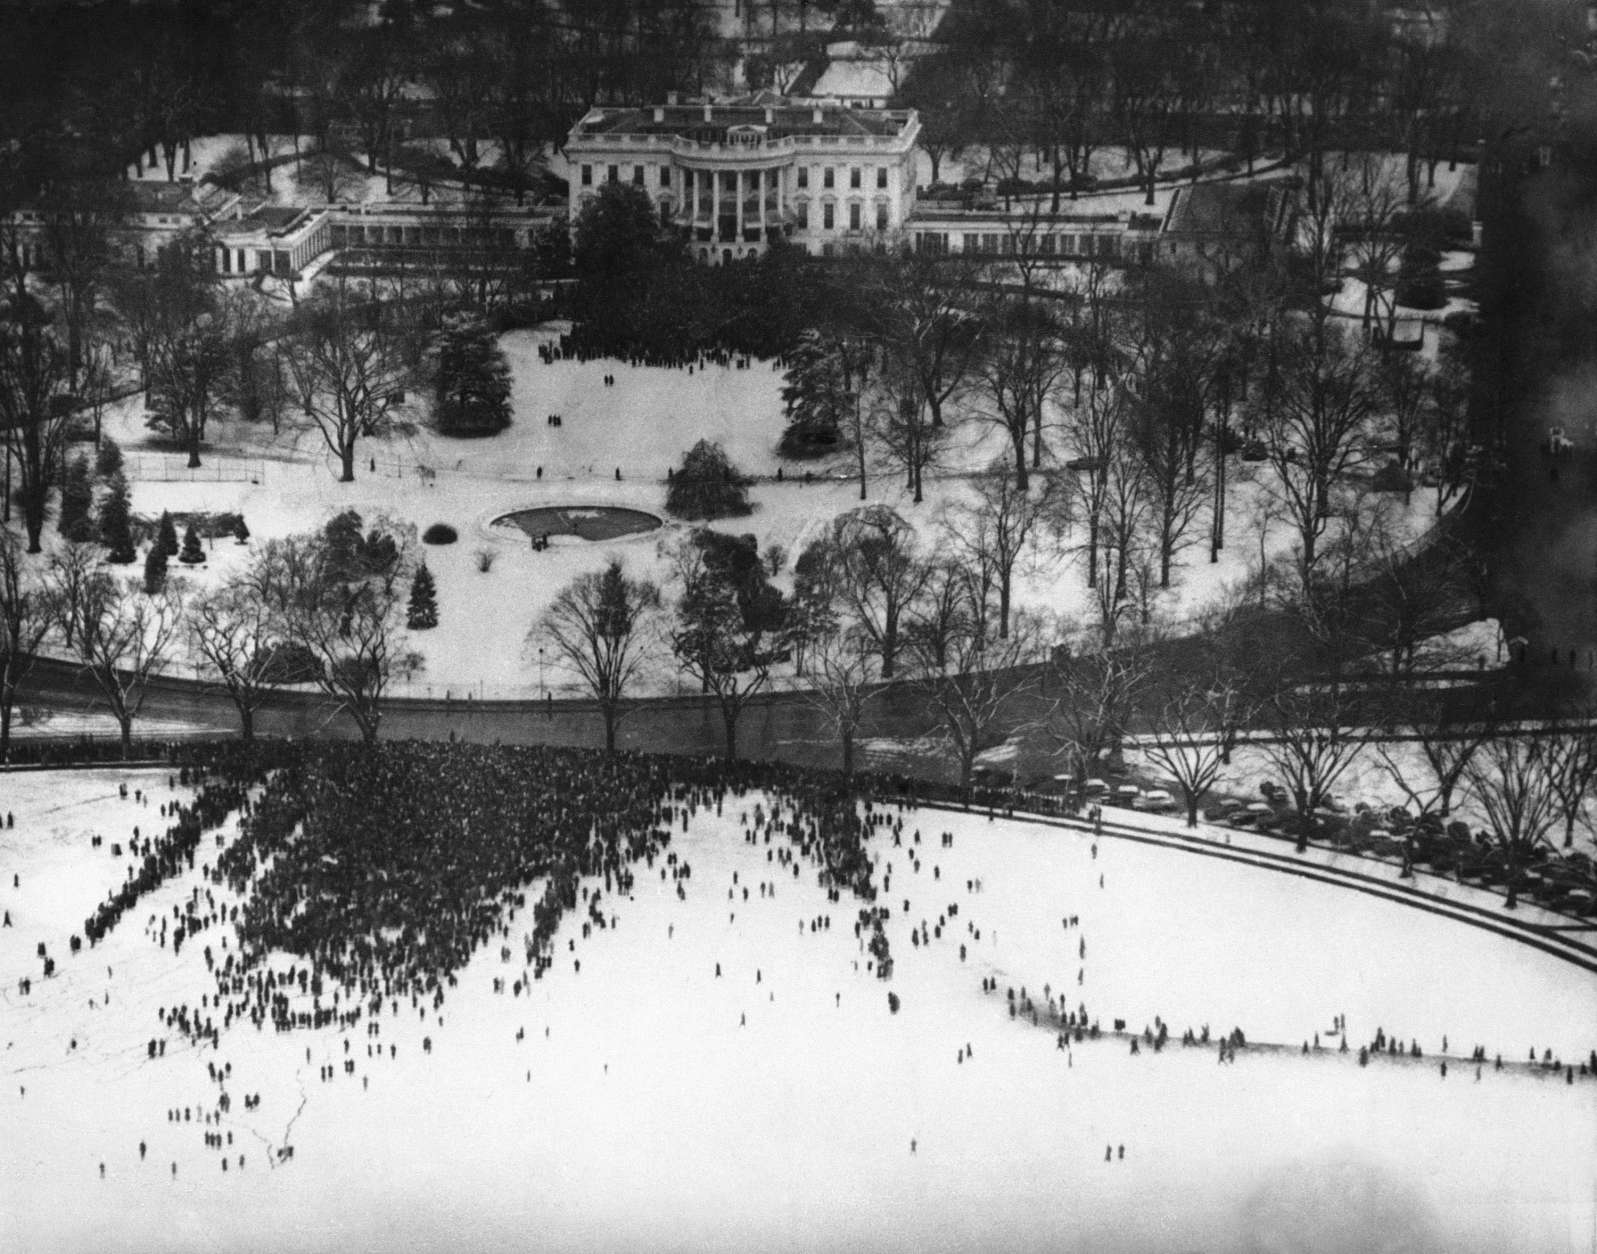 This birdseye view of President Roosevelt's unprecedented fourth term inaugural ceremony was made from the Washington Monument in Washington, D.C., Jan. 20, 1945. The crowd in the foreground is the general public gathered on the ellipse. In the background is the White House, with the crowd of invited guests gathered around the South Portico. (AP Photo)